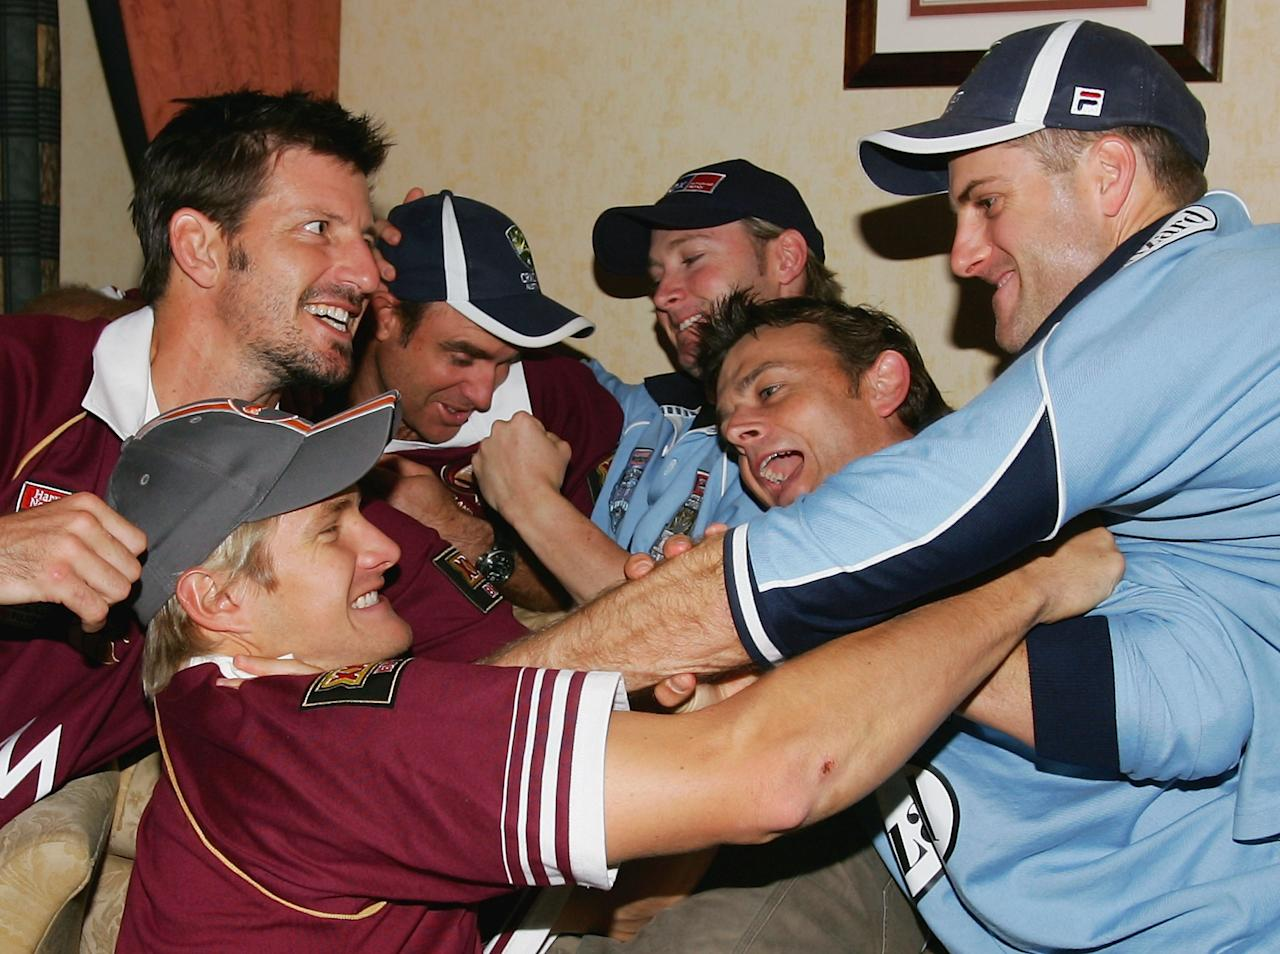 LEEDS, ENGLAND - JULY 6:  (L-R) Queensland supporters Michael Kasprowicz, Shane Watson and Matthew Hayden clash with New South Wales rivals Michael Clarke, Adam Gilchrist and Simon Katich just before kick off in the third and deciding Rugby League State of Origin match at the Crowne Plaza Hotel on July 6, 2005 in Leeds, United Kingdom (Photo by Hamish Blair/Getty Images)